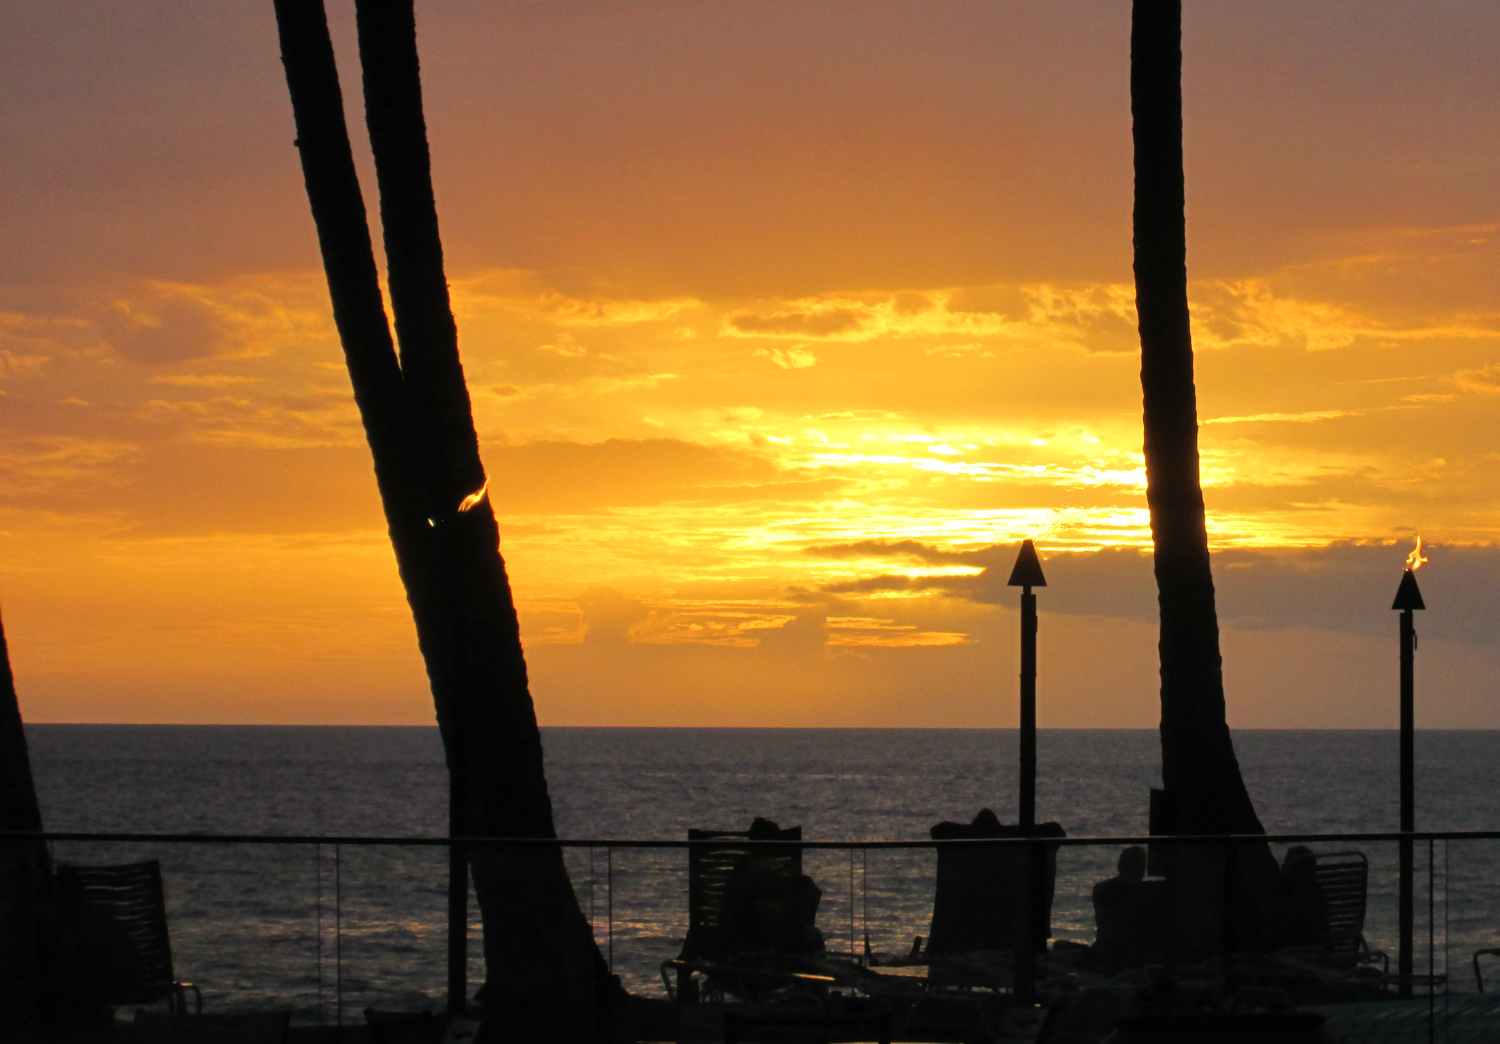 Sunset viewed from Mana Kai Resort, Kihei, Maui, Hawaii, November 2014. Photo credit CindyLouWho2